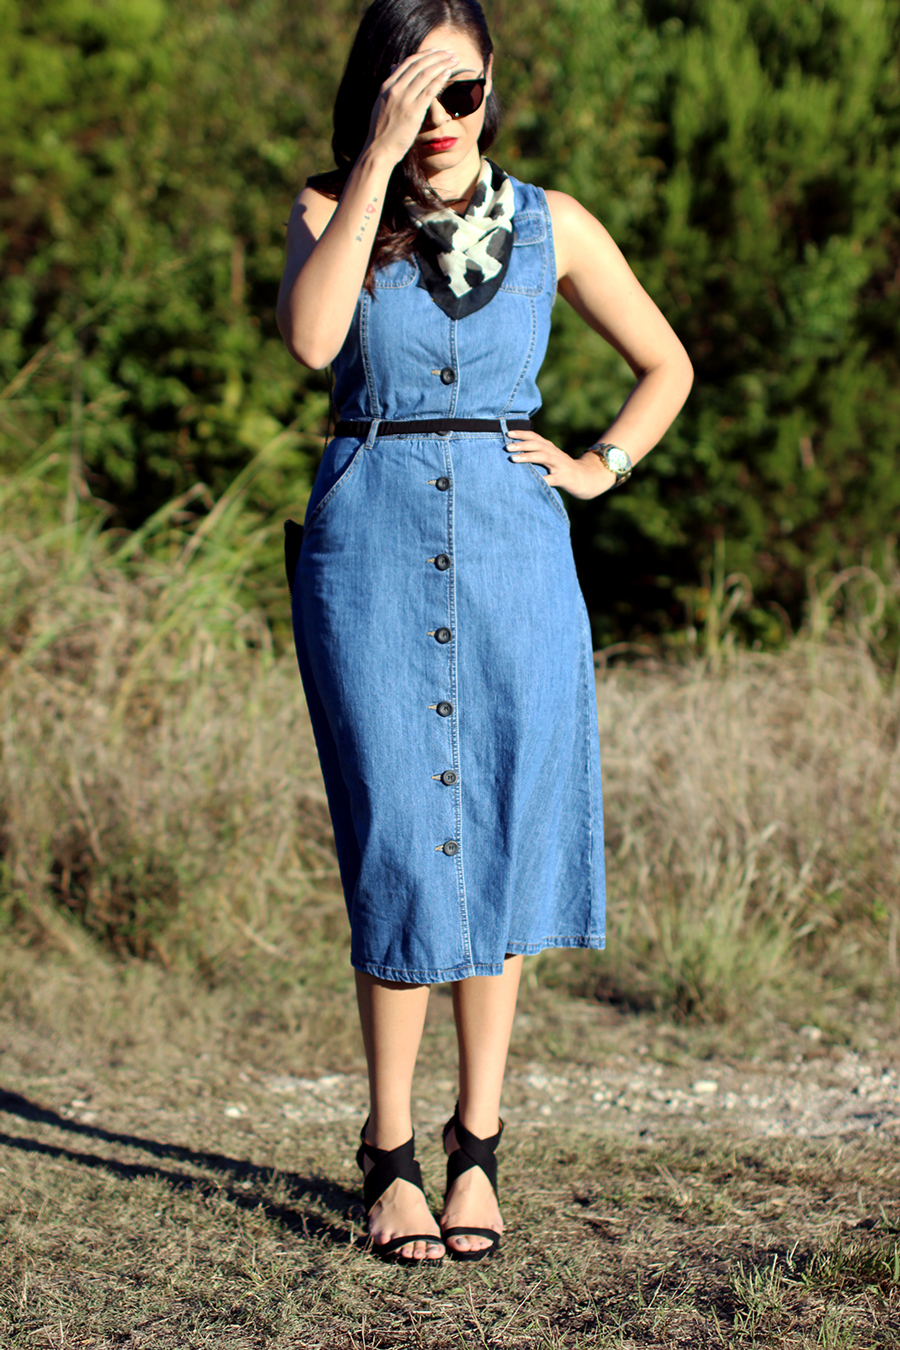 FIXIN-TO-THRILL-PINK-SILVER-FASHION-DENIM-DRESS-STRAPPY-HEELS-TREND-FALL-OCTOBER-ATX-AUSTIN-STYLE-BLOG-FW15-TRENDY-CHIC-GLAM-TEXAS-3